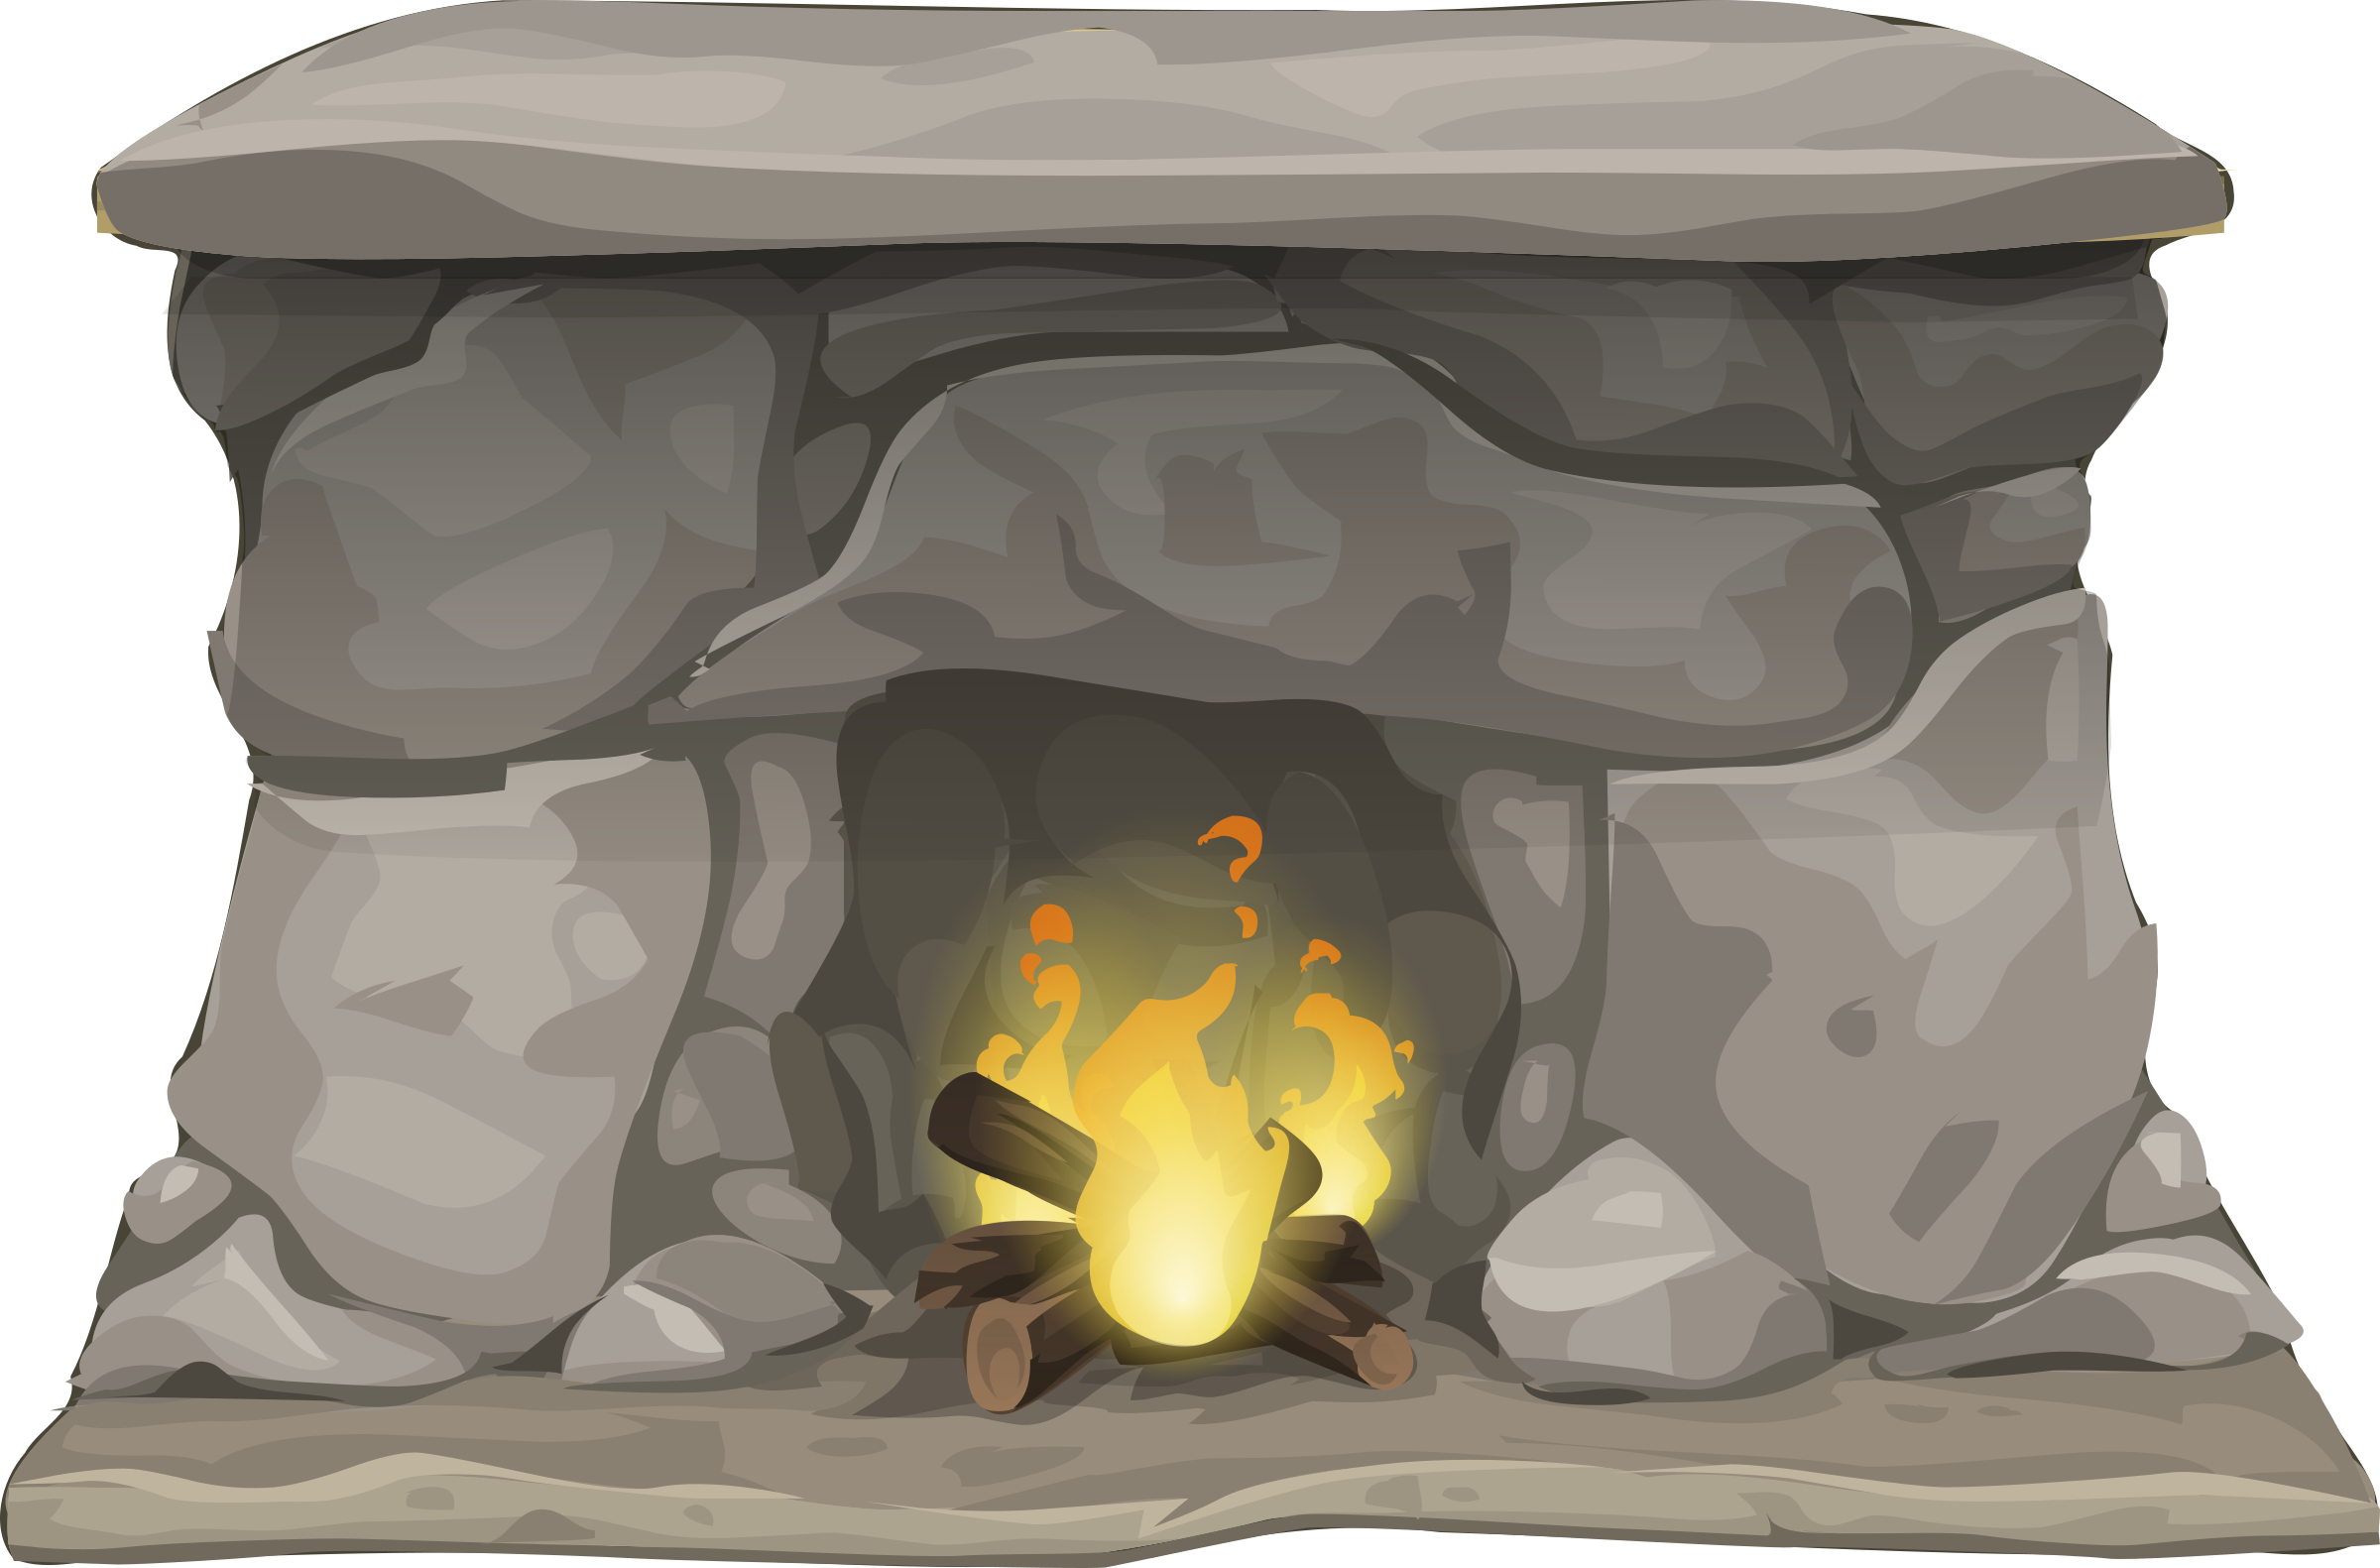 Fireplace with Fire by j4p4n